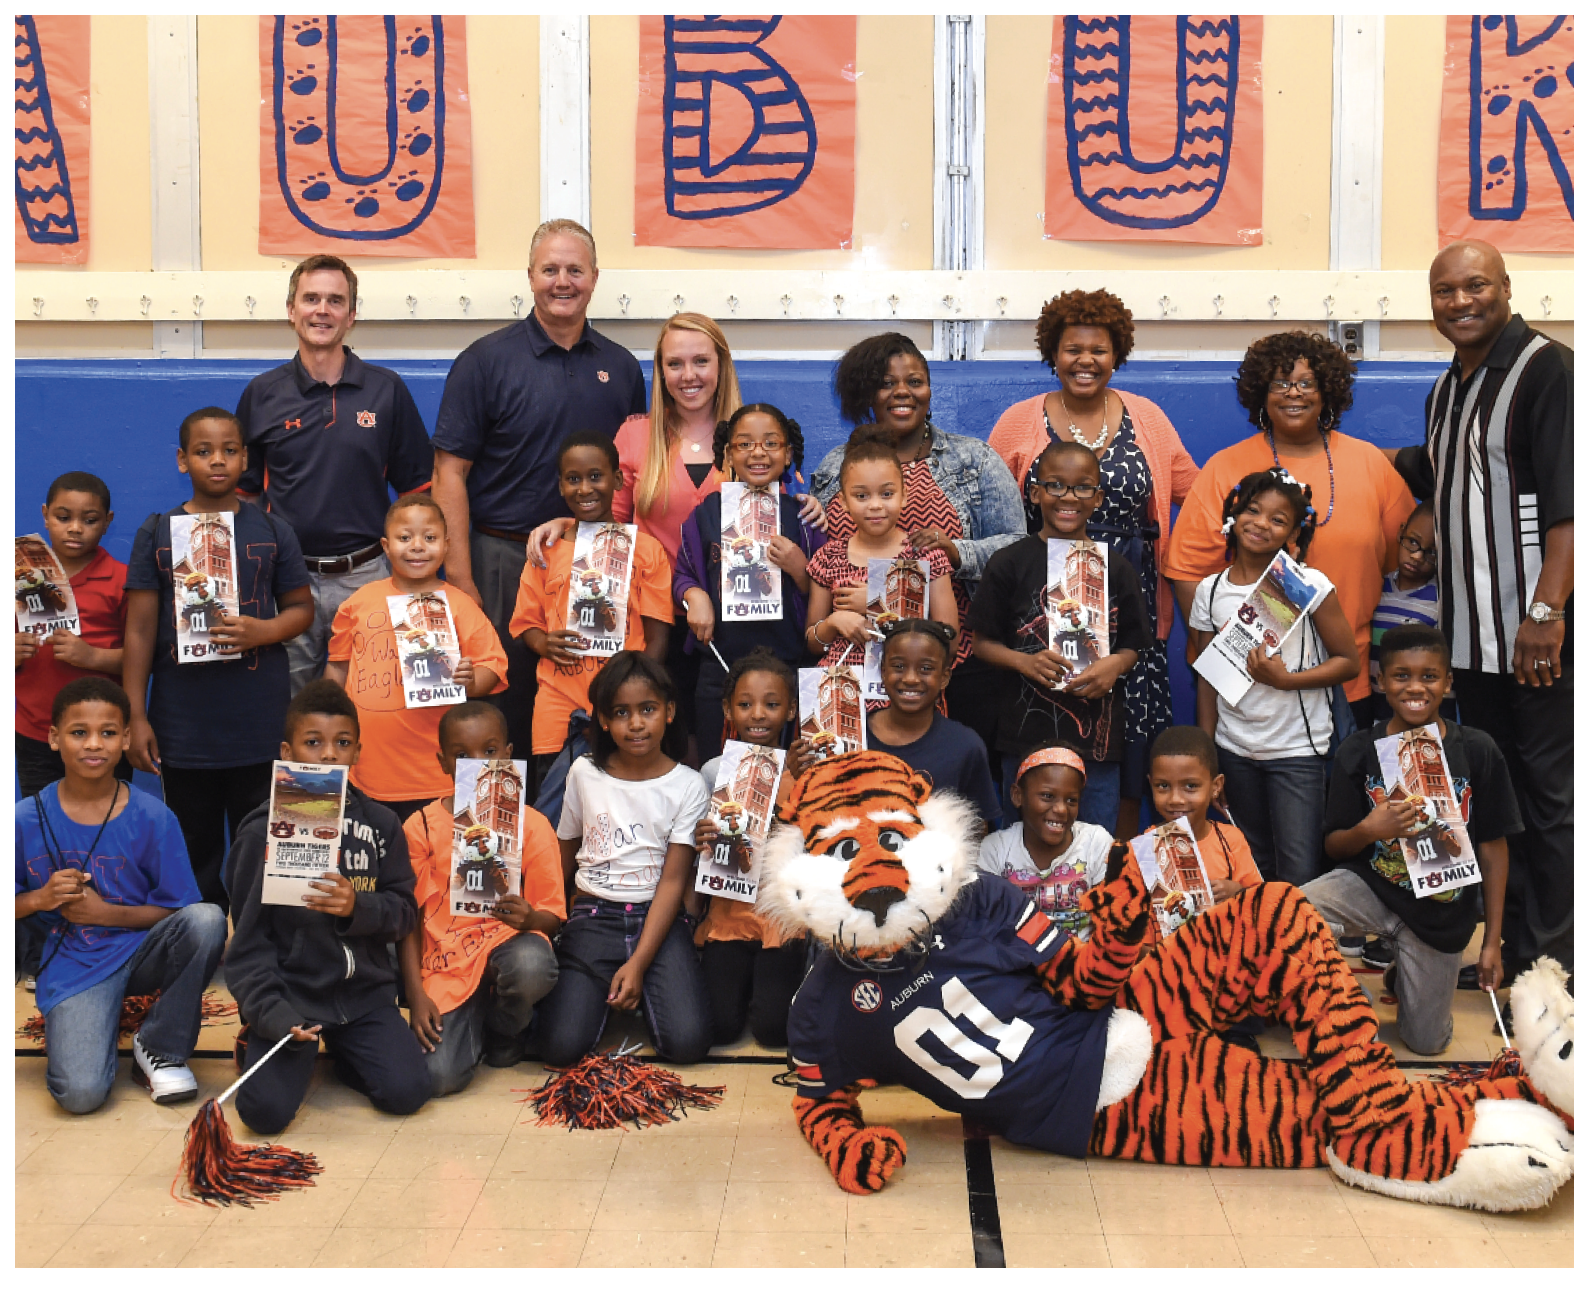 Aubie at Schmid Elementary School